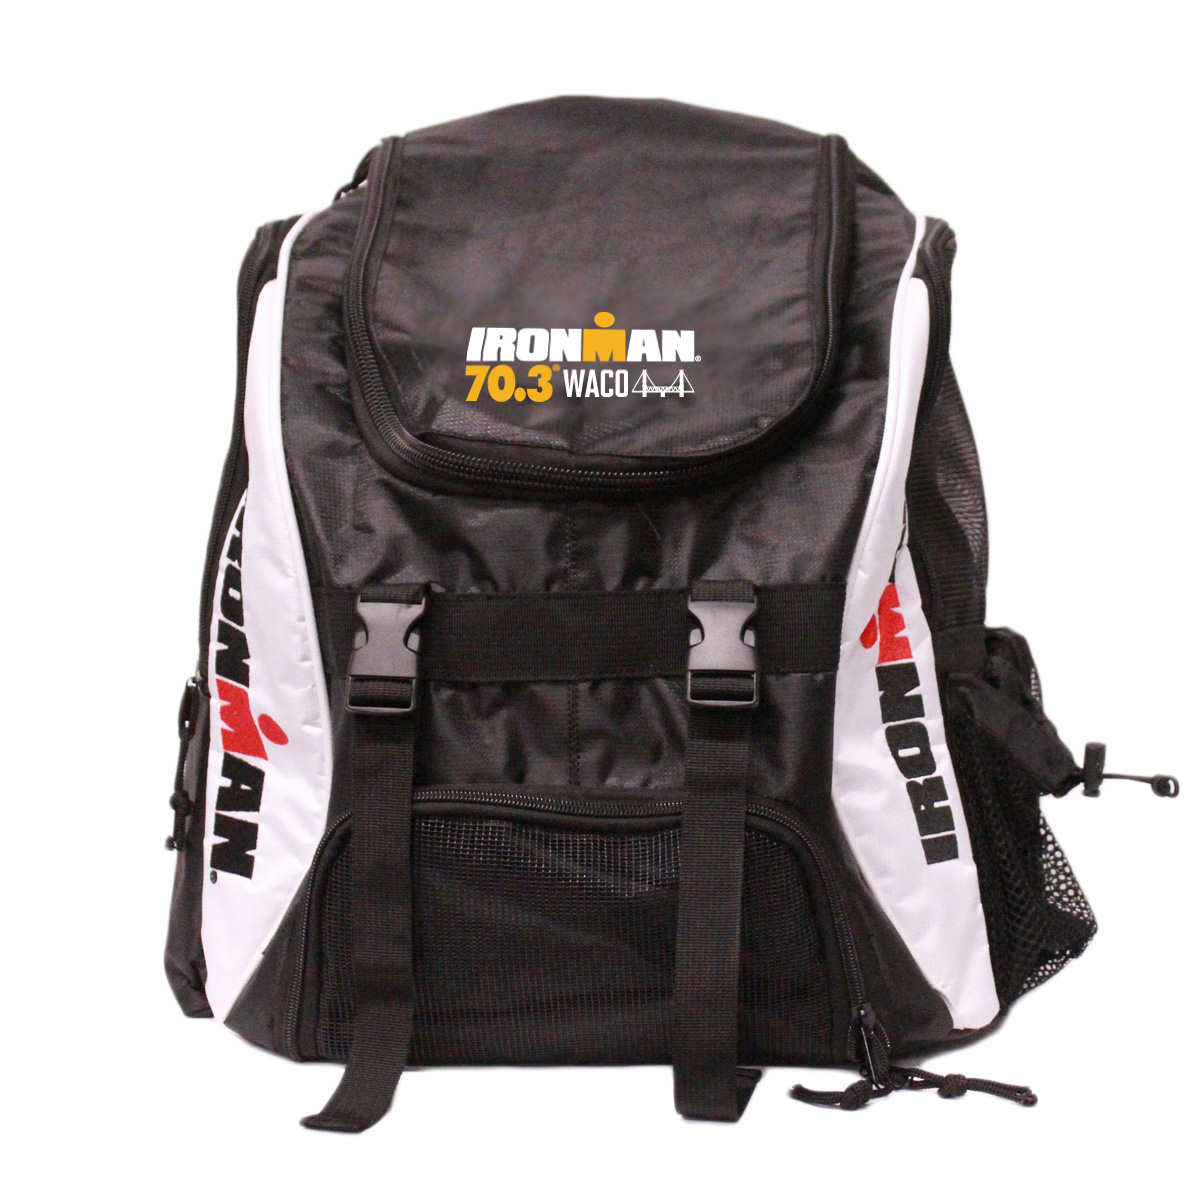 IRONMAN 70.3 WACO 2019 EVENT BACKPACK